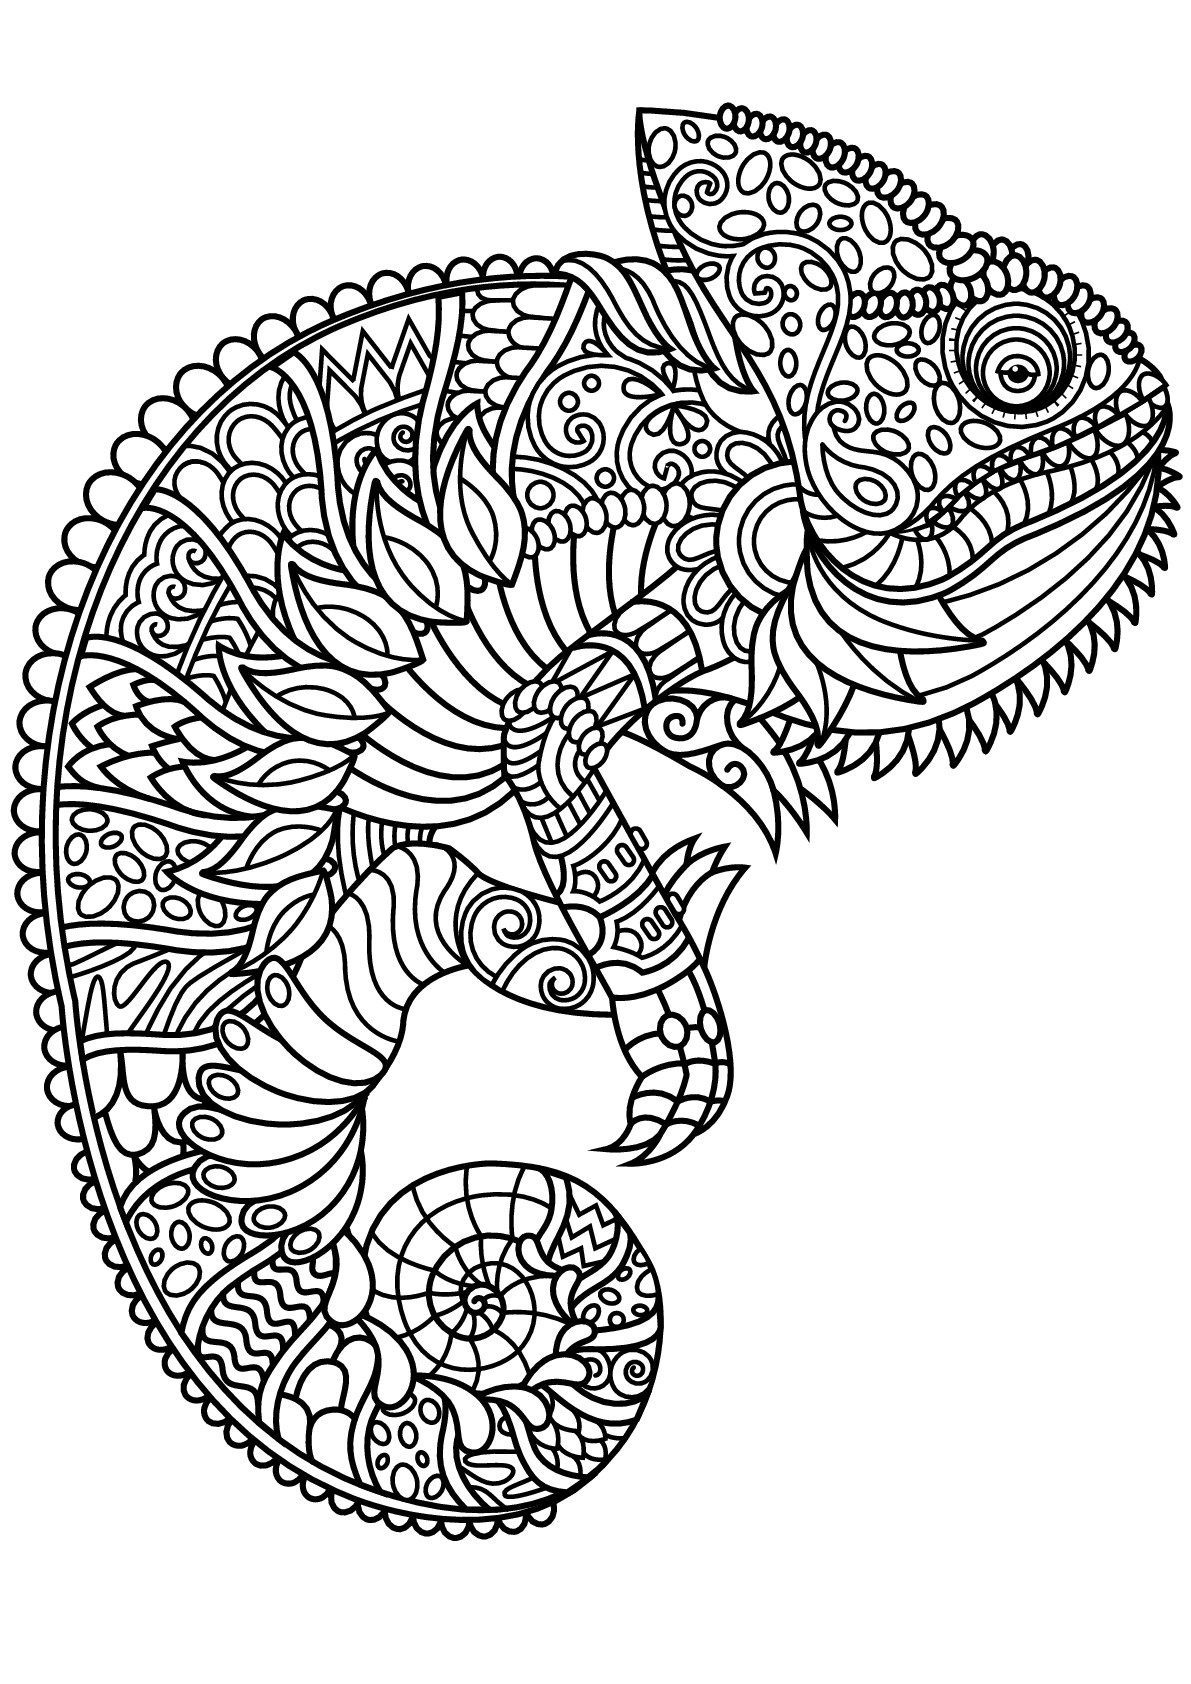 Free Book Chameleon Chameleons Lizards Adult Coloring Pages